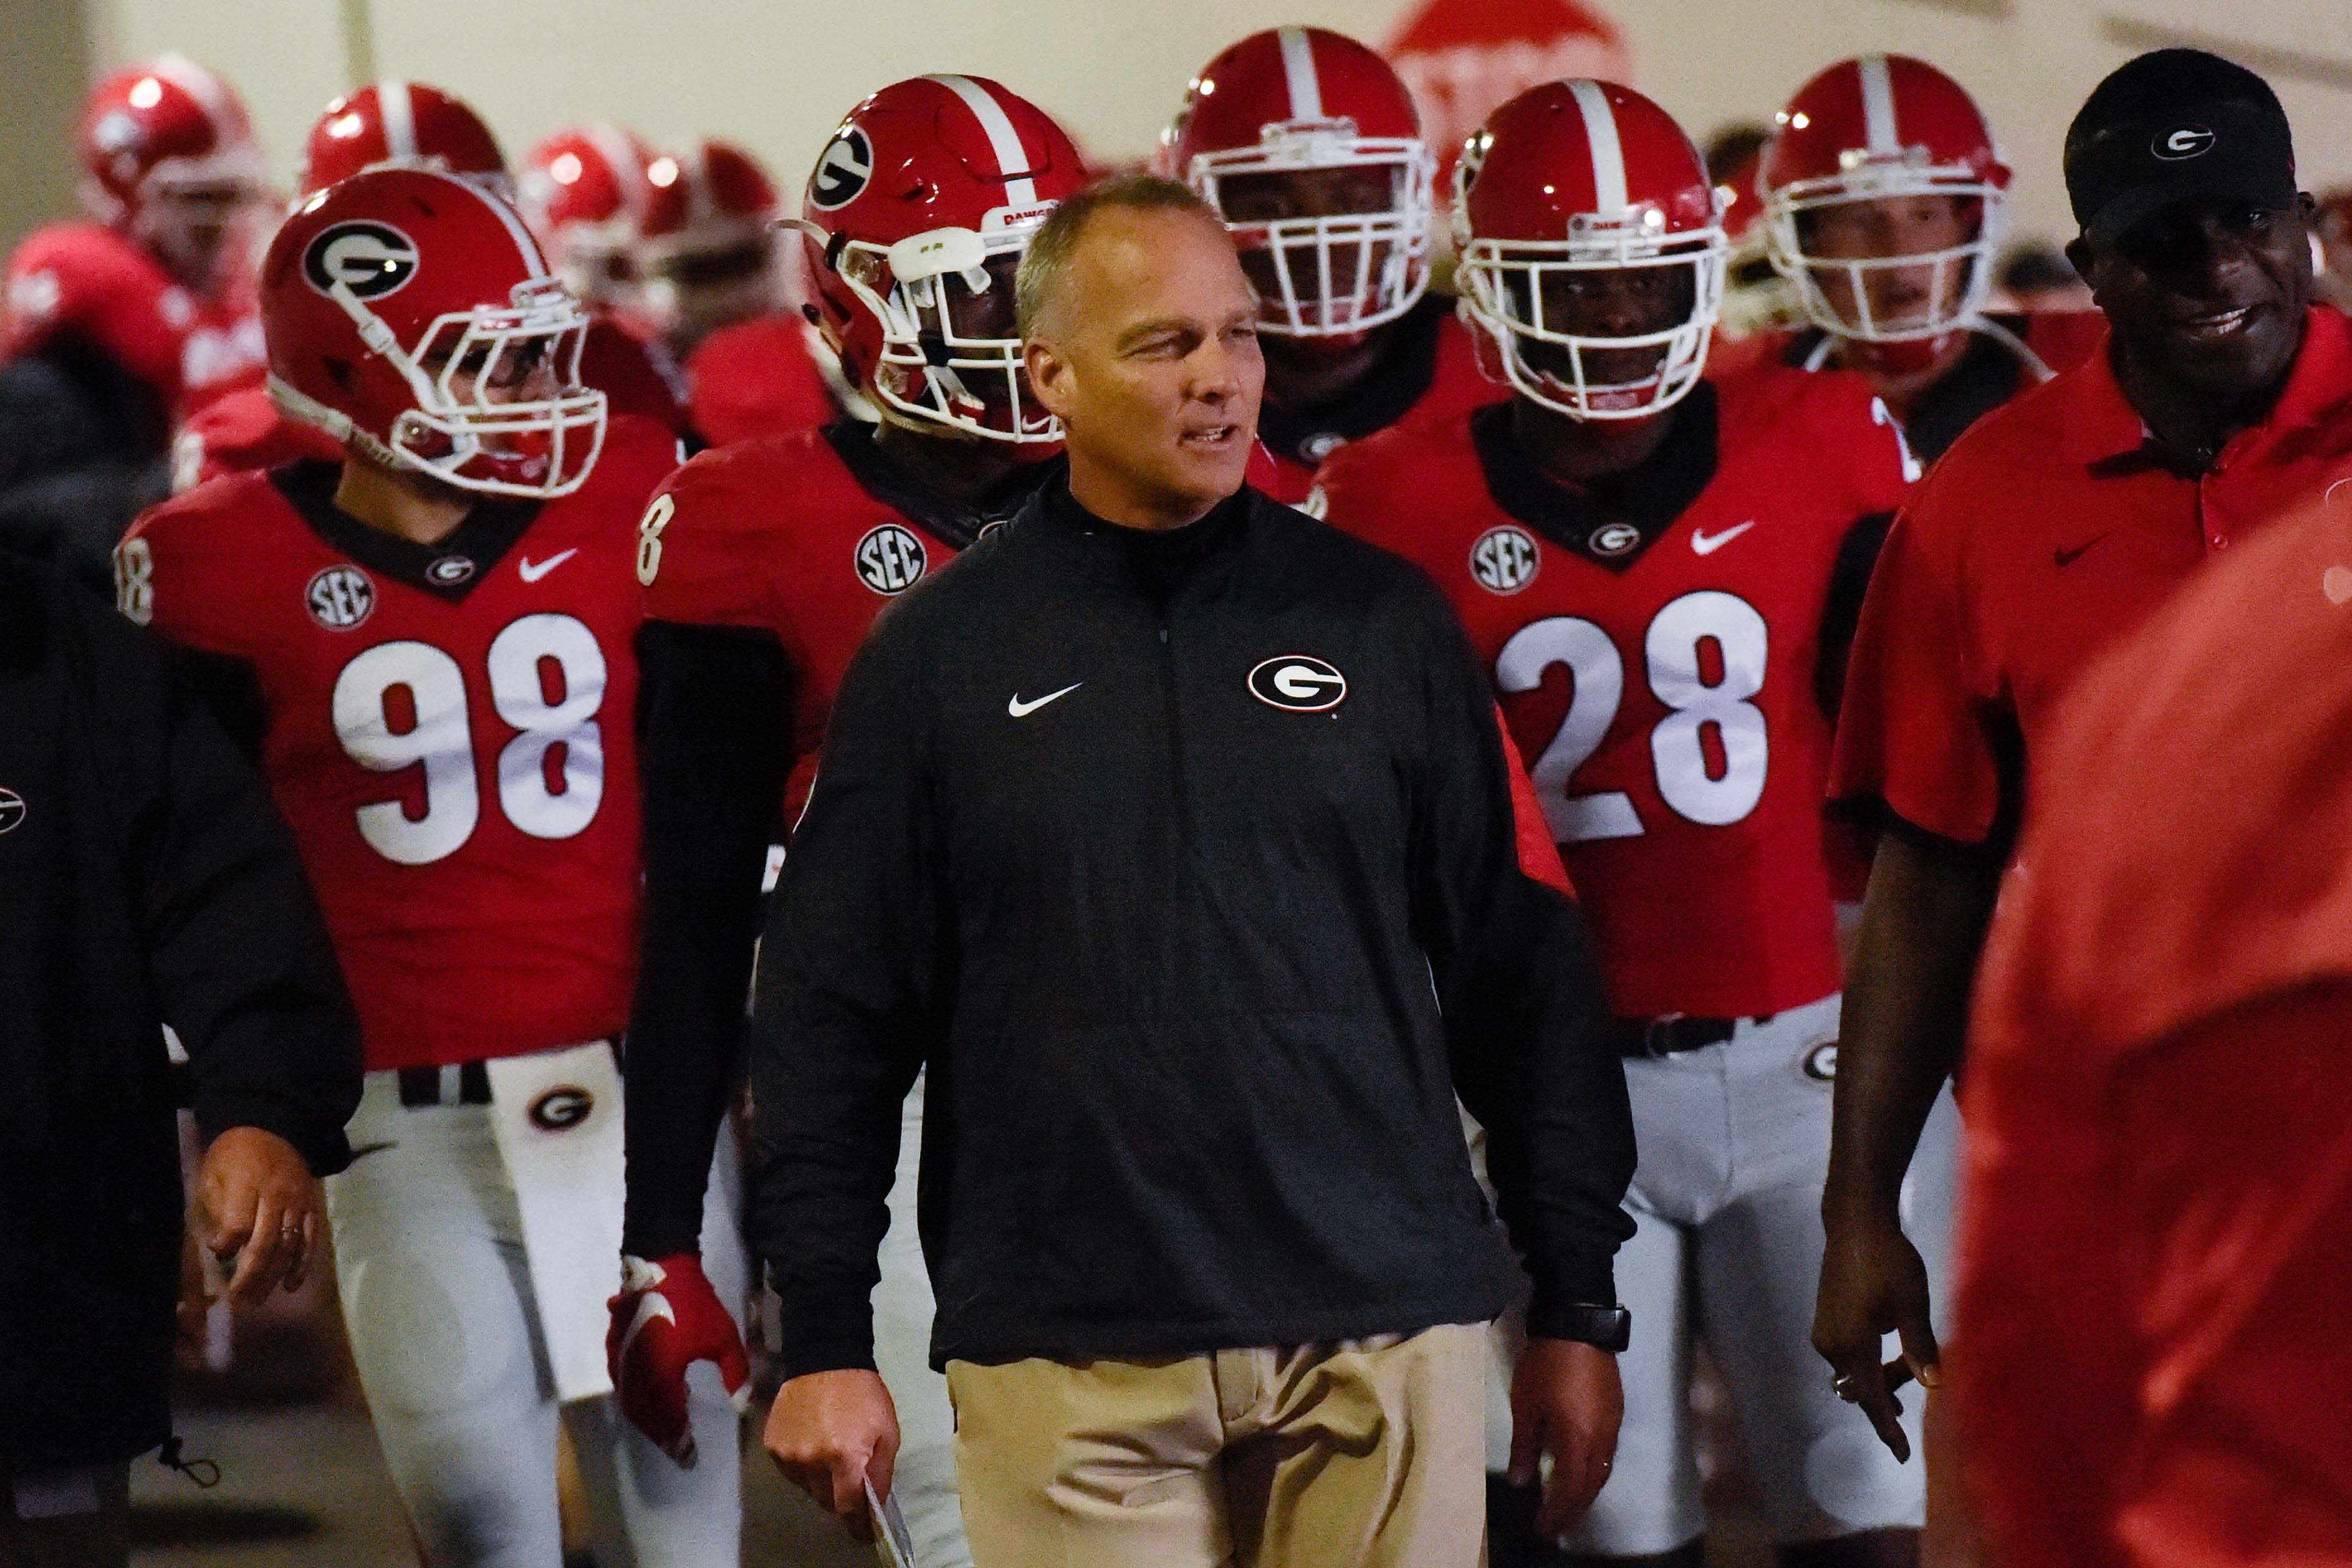 Coach Mark Richt, now Tied for 2nd place in total Wins at Georgia